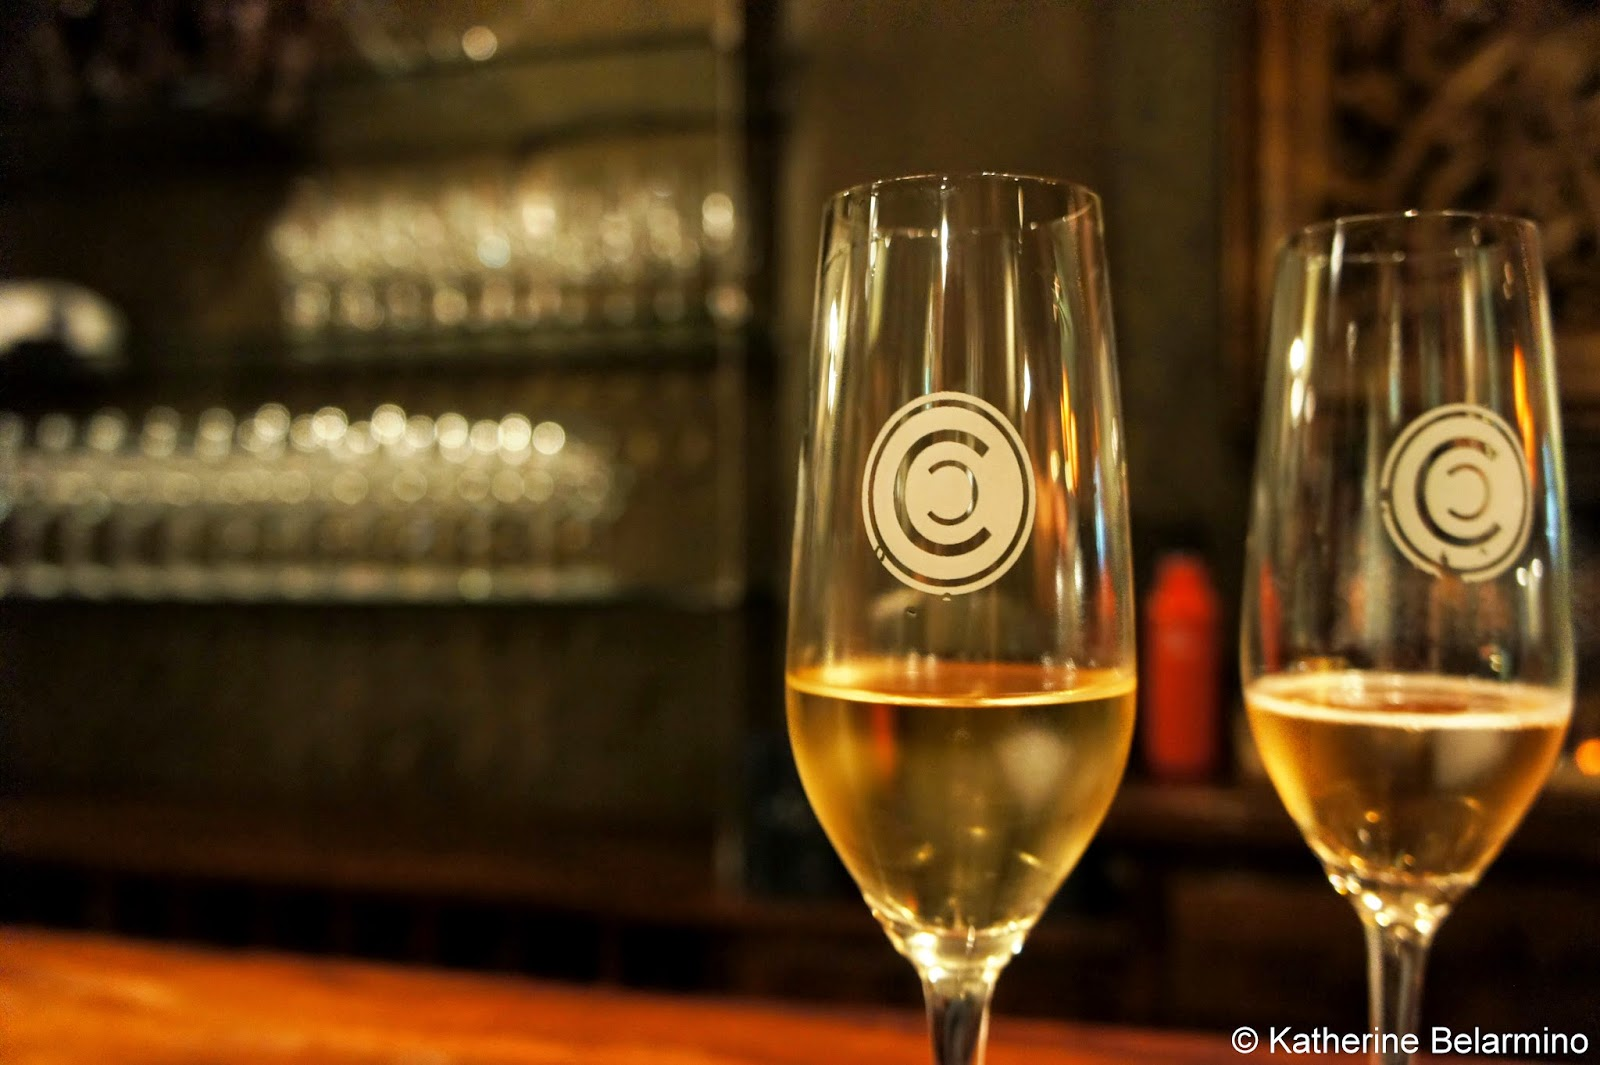 Caraccioli Cellars Sparkling Wine Carmel-by-the-Sea California